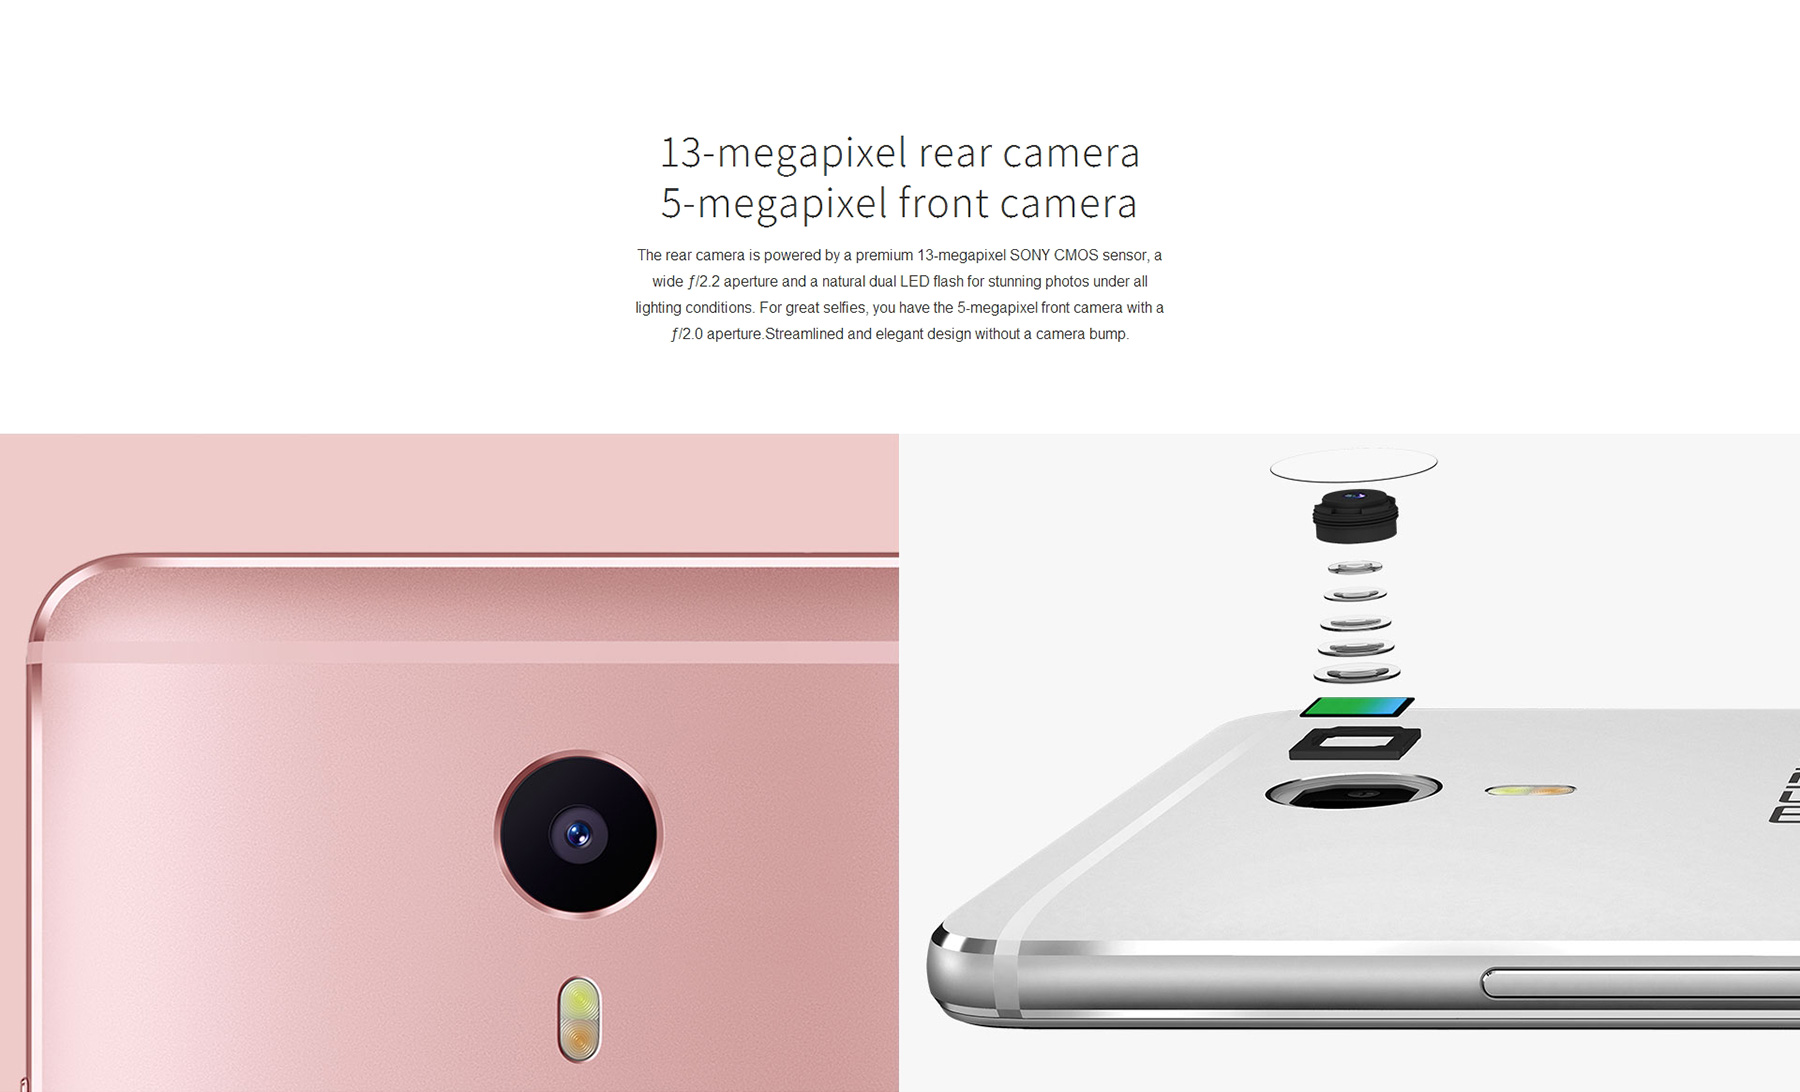 Meizu M3 Max Android 6.0 6.0 inch 4G Phablet Helio P10 Octa Core 1.8GHz 3GB RAM 64GB ROM Fingerprint Scanner 13.0MP Rear Camera GPS